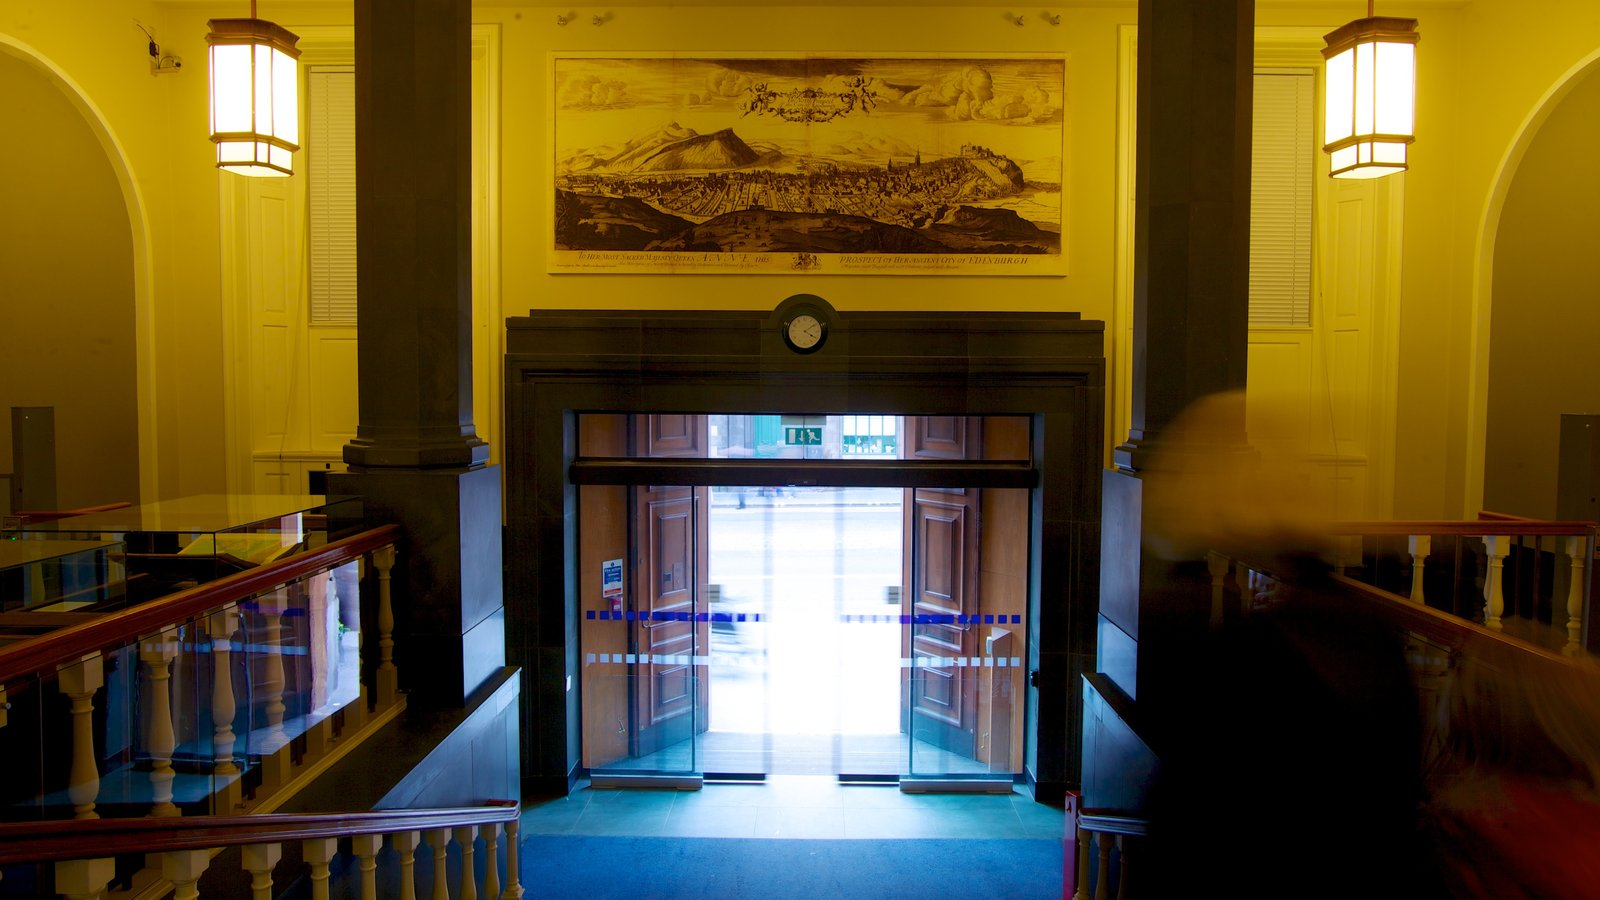 National Library of Scotland which includes interior views